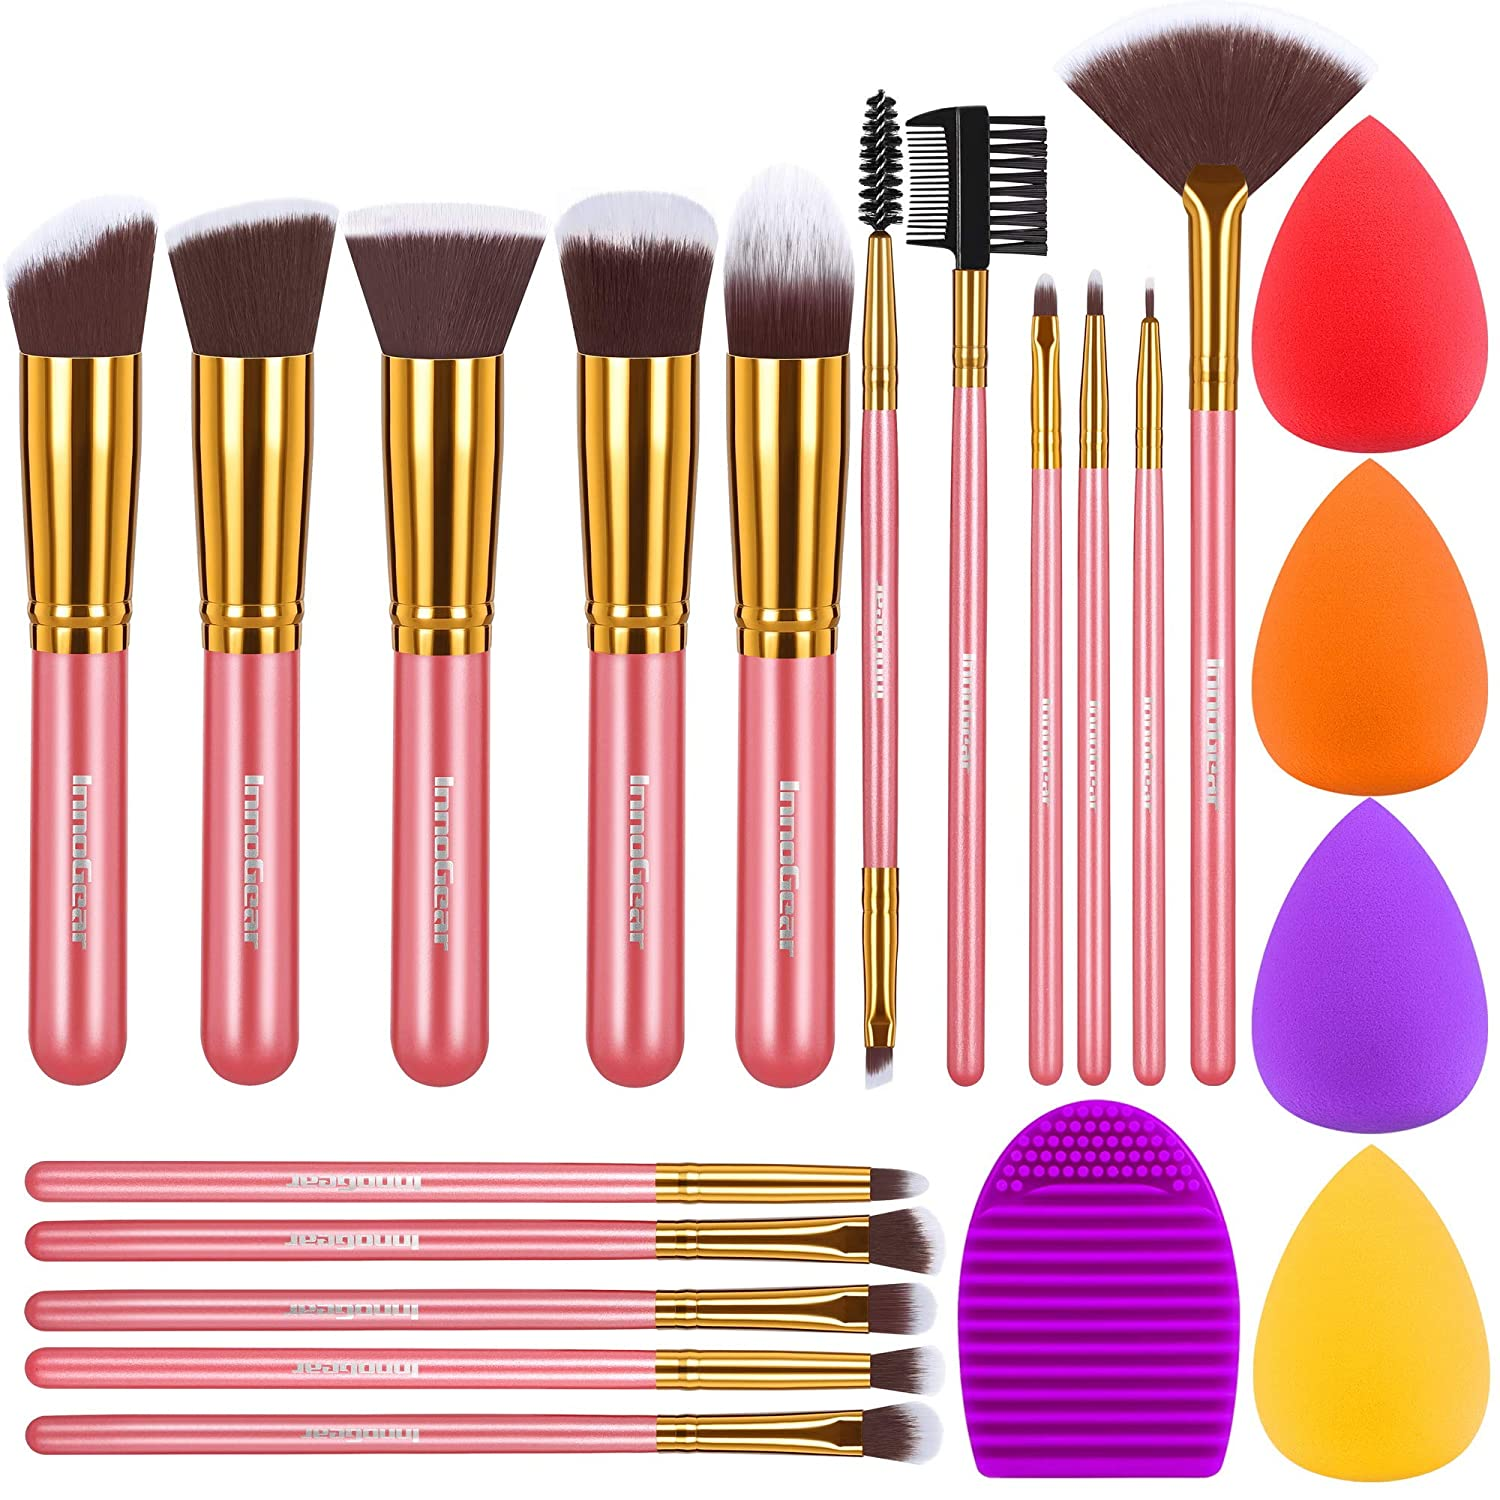 InnoGear Makeup Brushes Set, Professional Cosmetic Brush Set with 16 Makeup Brushes and Sponges and Brush Cleaner for Foundation Powder Concealers Eyeshadows Liquid Cream, Golden Pink